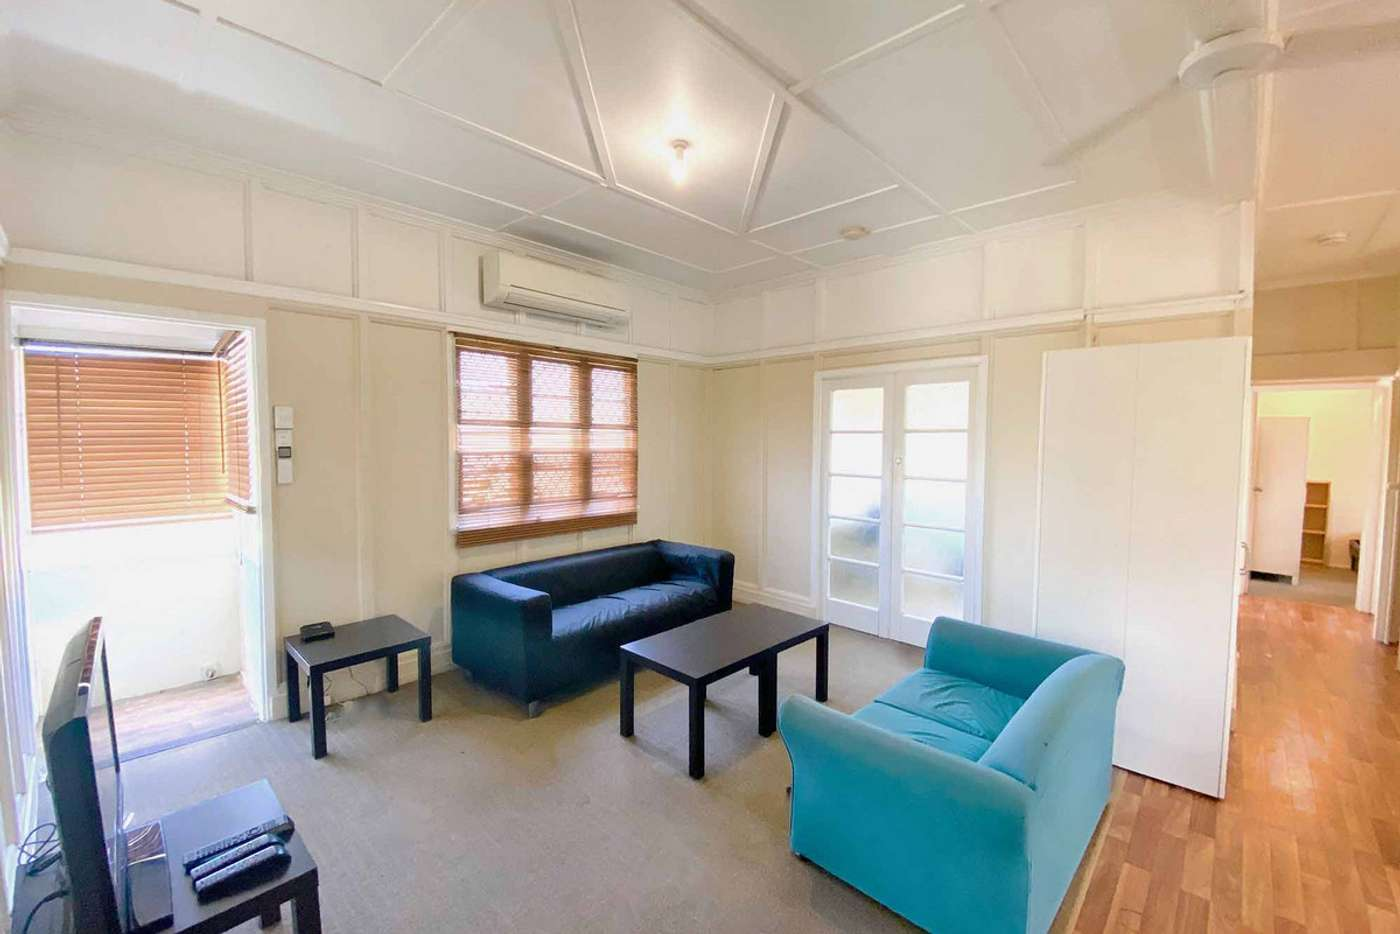 Main view of Homely house listing, 247 Sir Fred Schonell Drive, St Lucia QLD 4067